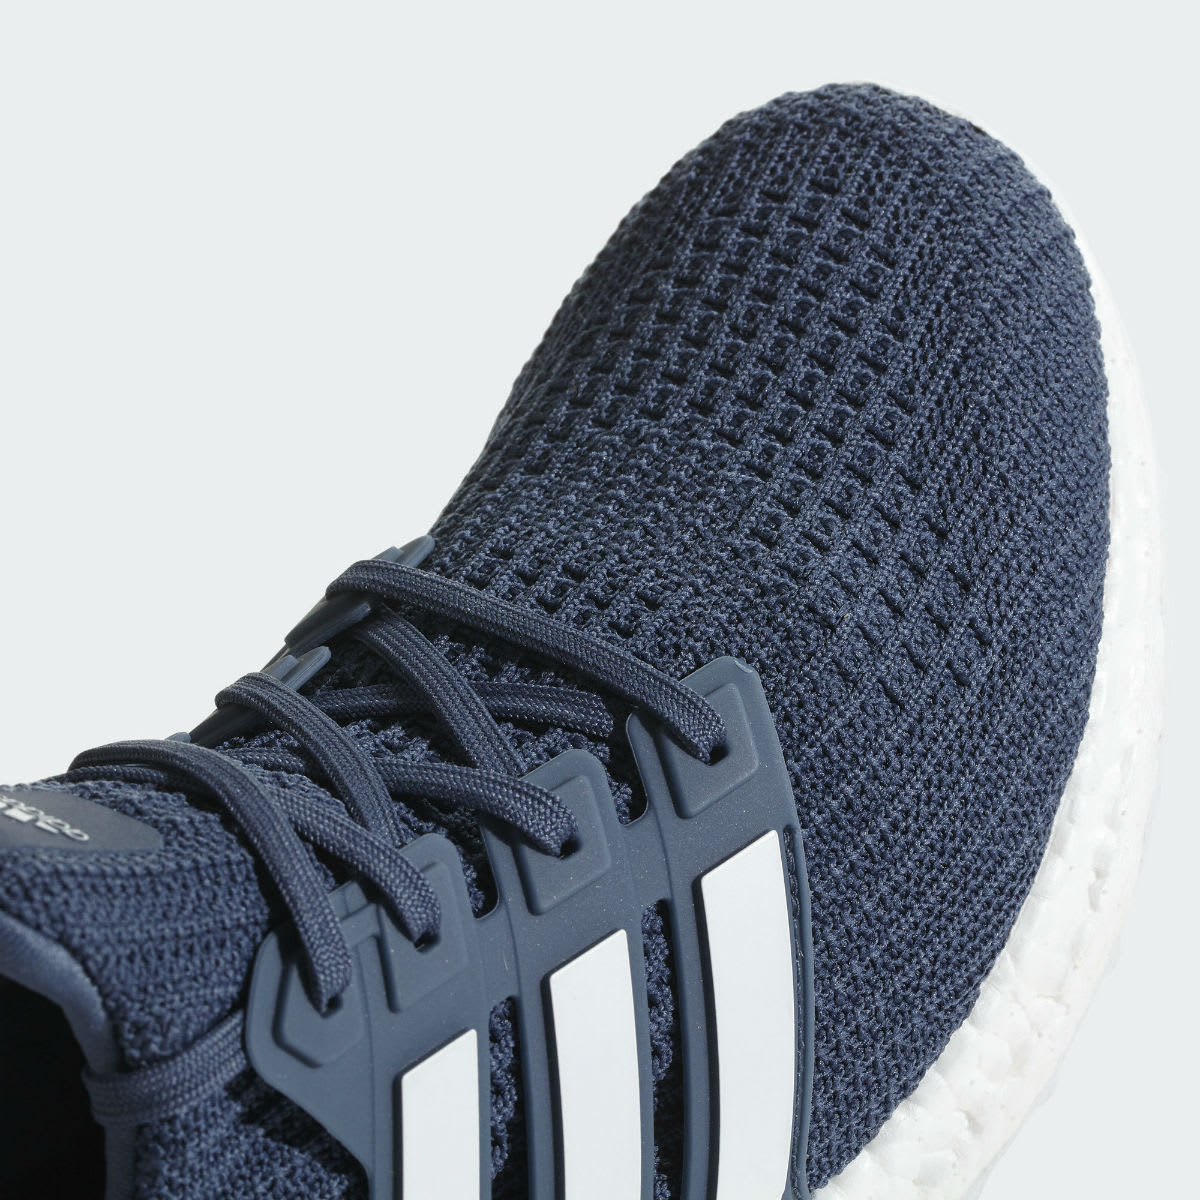 ROVIEW Adidas Parley Ultraboost 4.0 (2018) Review